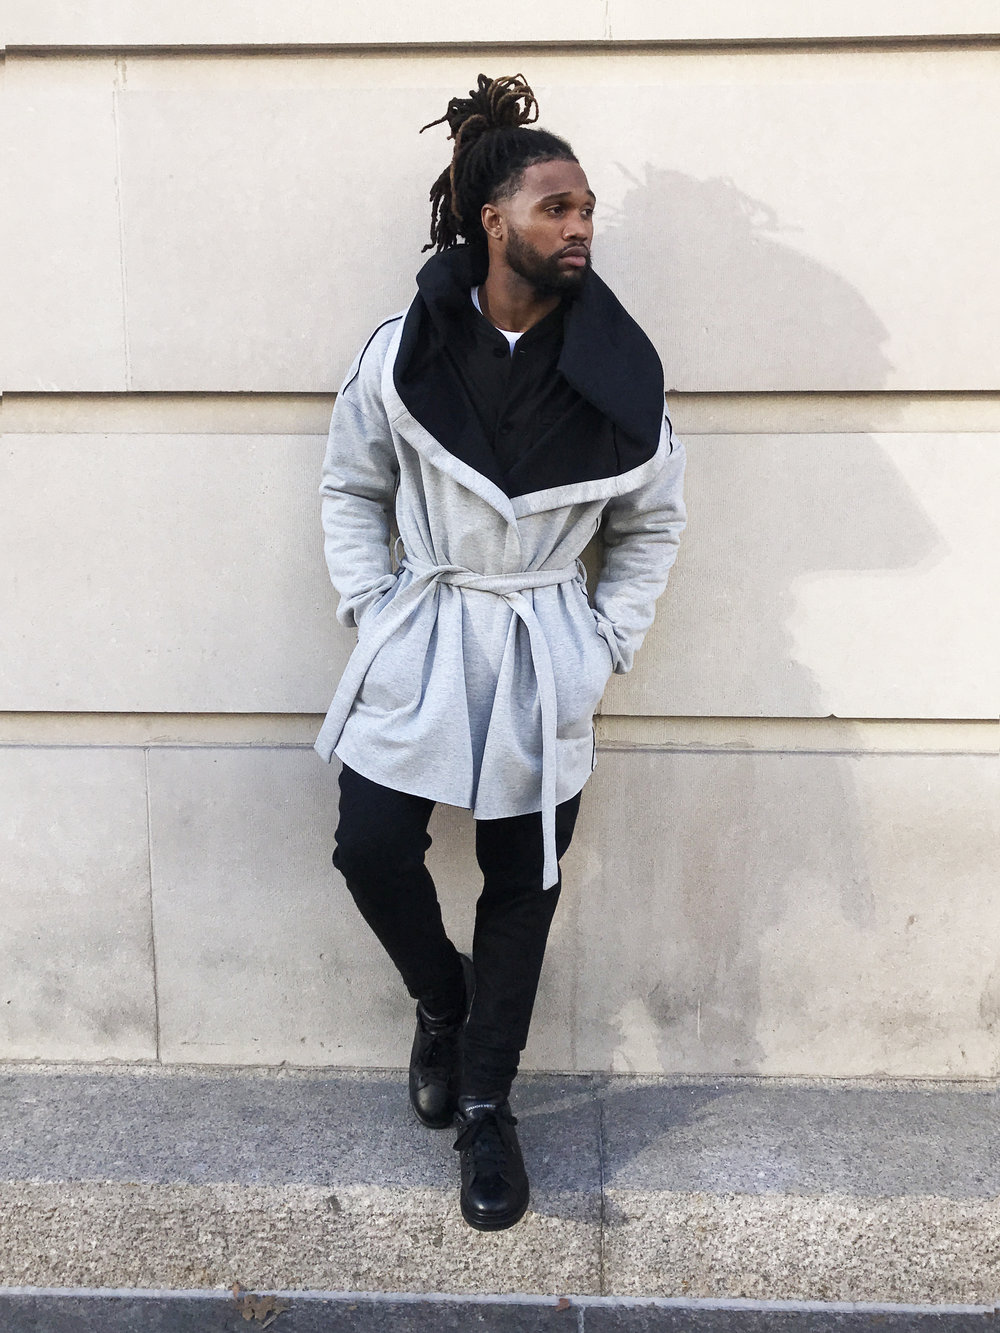 omar-bolden-in-hooded-haori-by-reinge.jpg